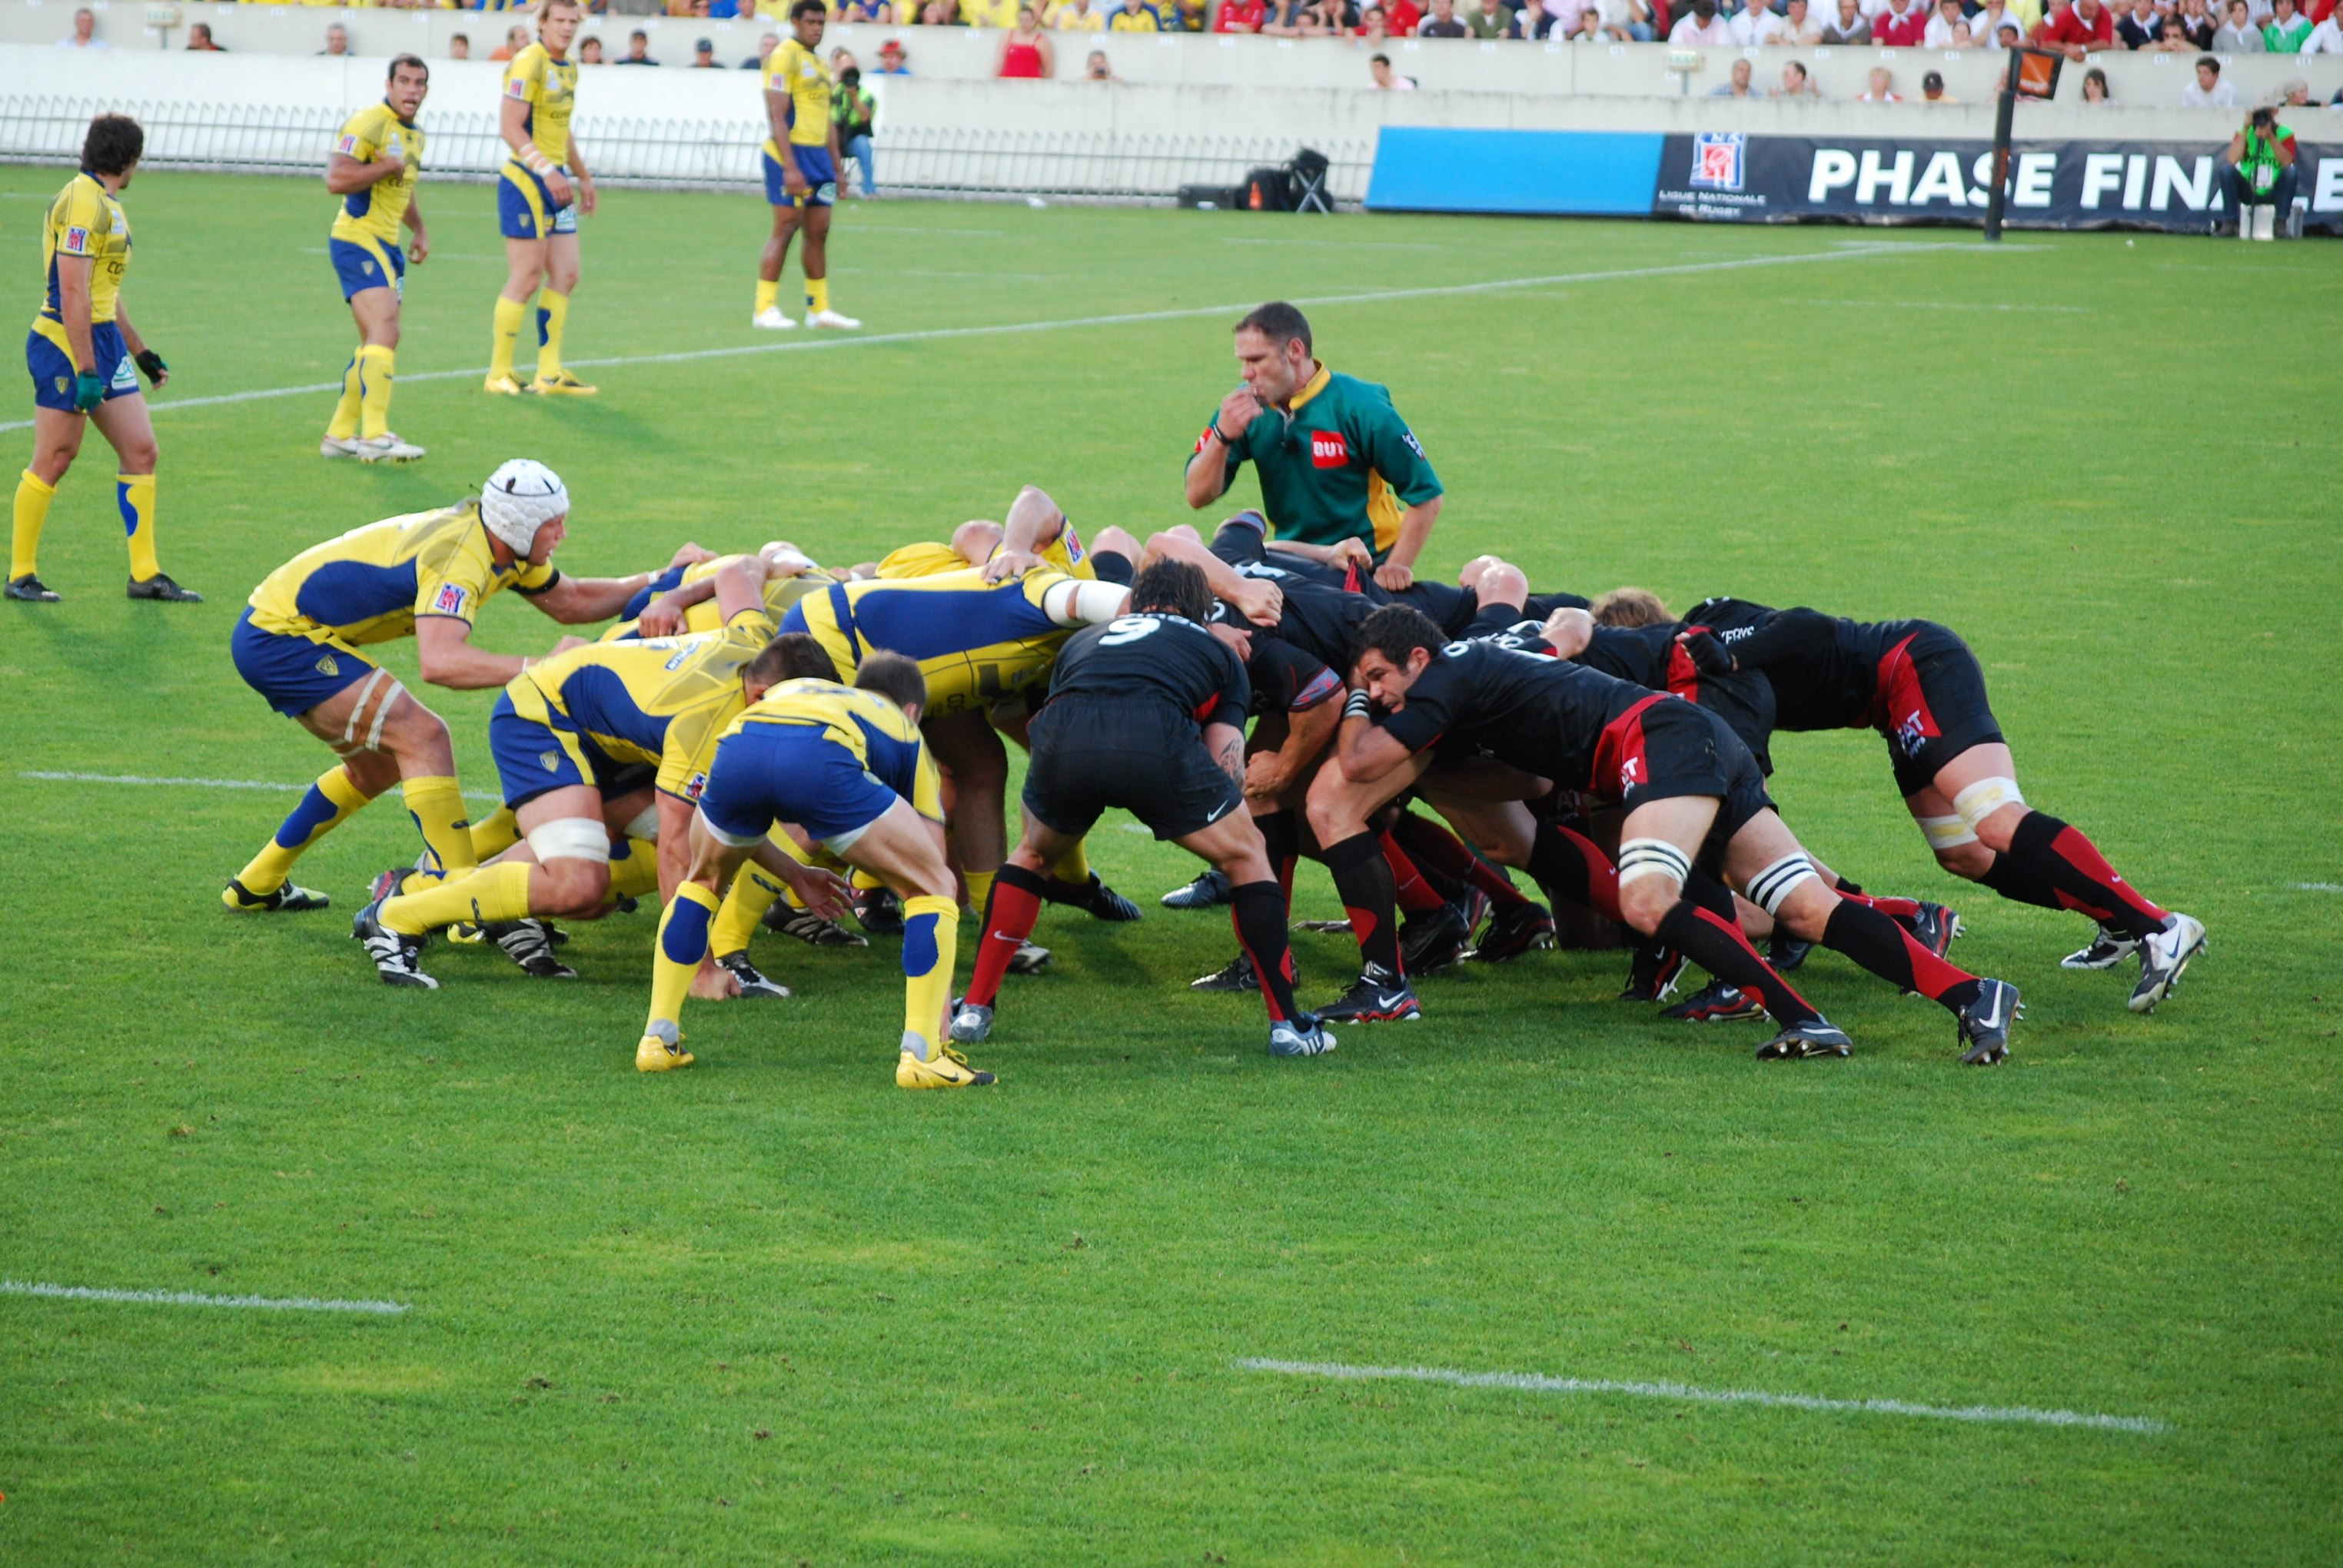 MyFrenchLife™ - MyFrenchLife.org - French rugby - rugby in France - Top 14 - Pro D2 - Mélée St ASM Clermont.